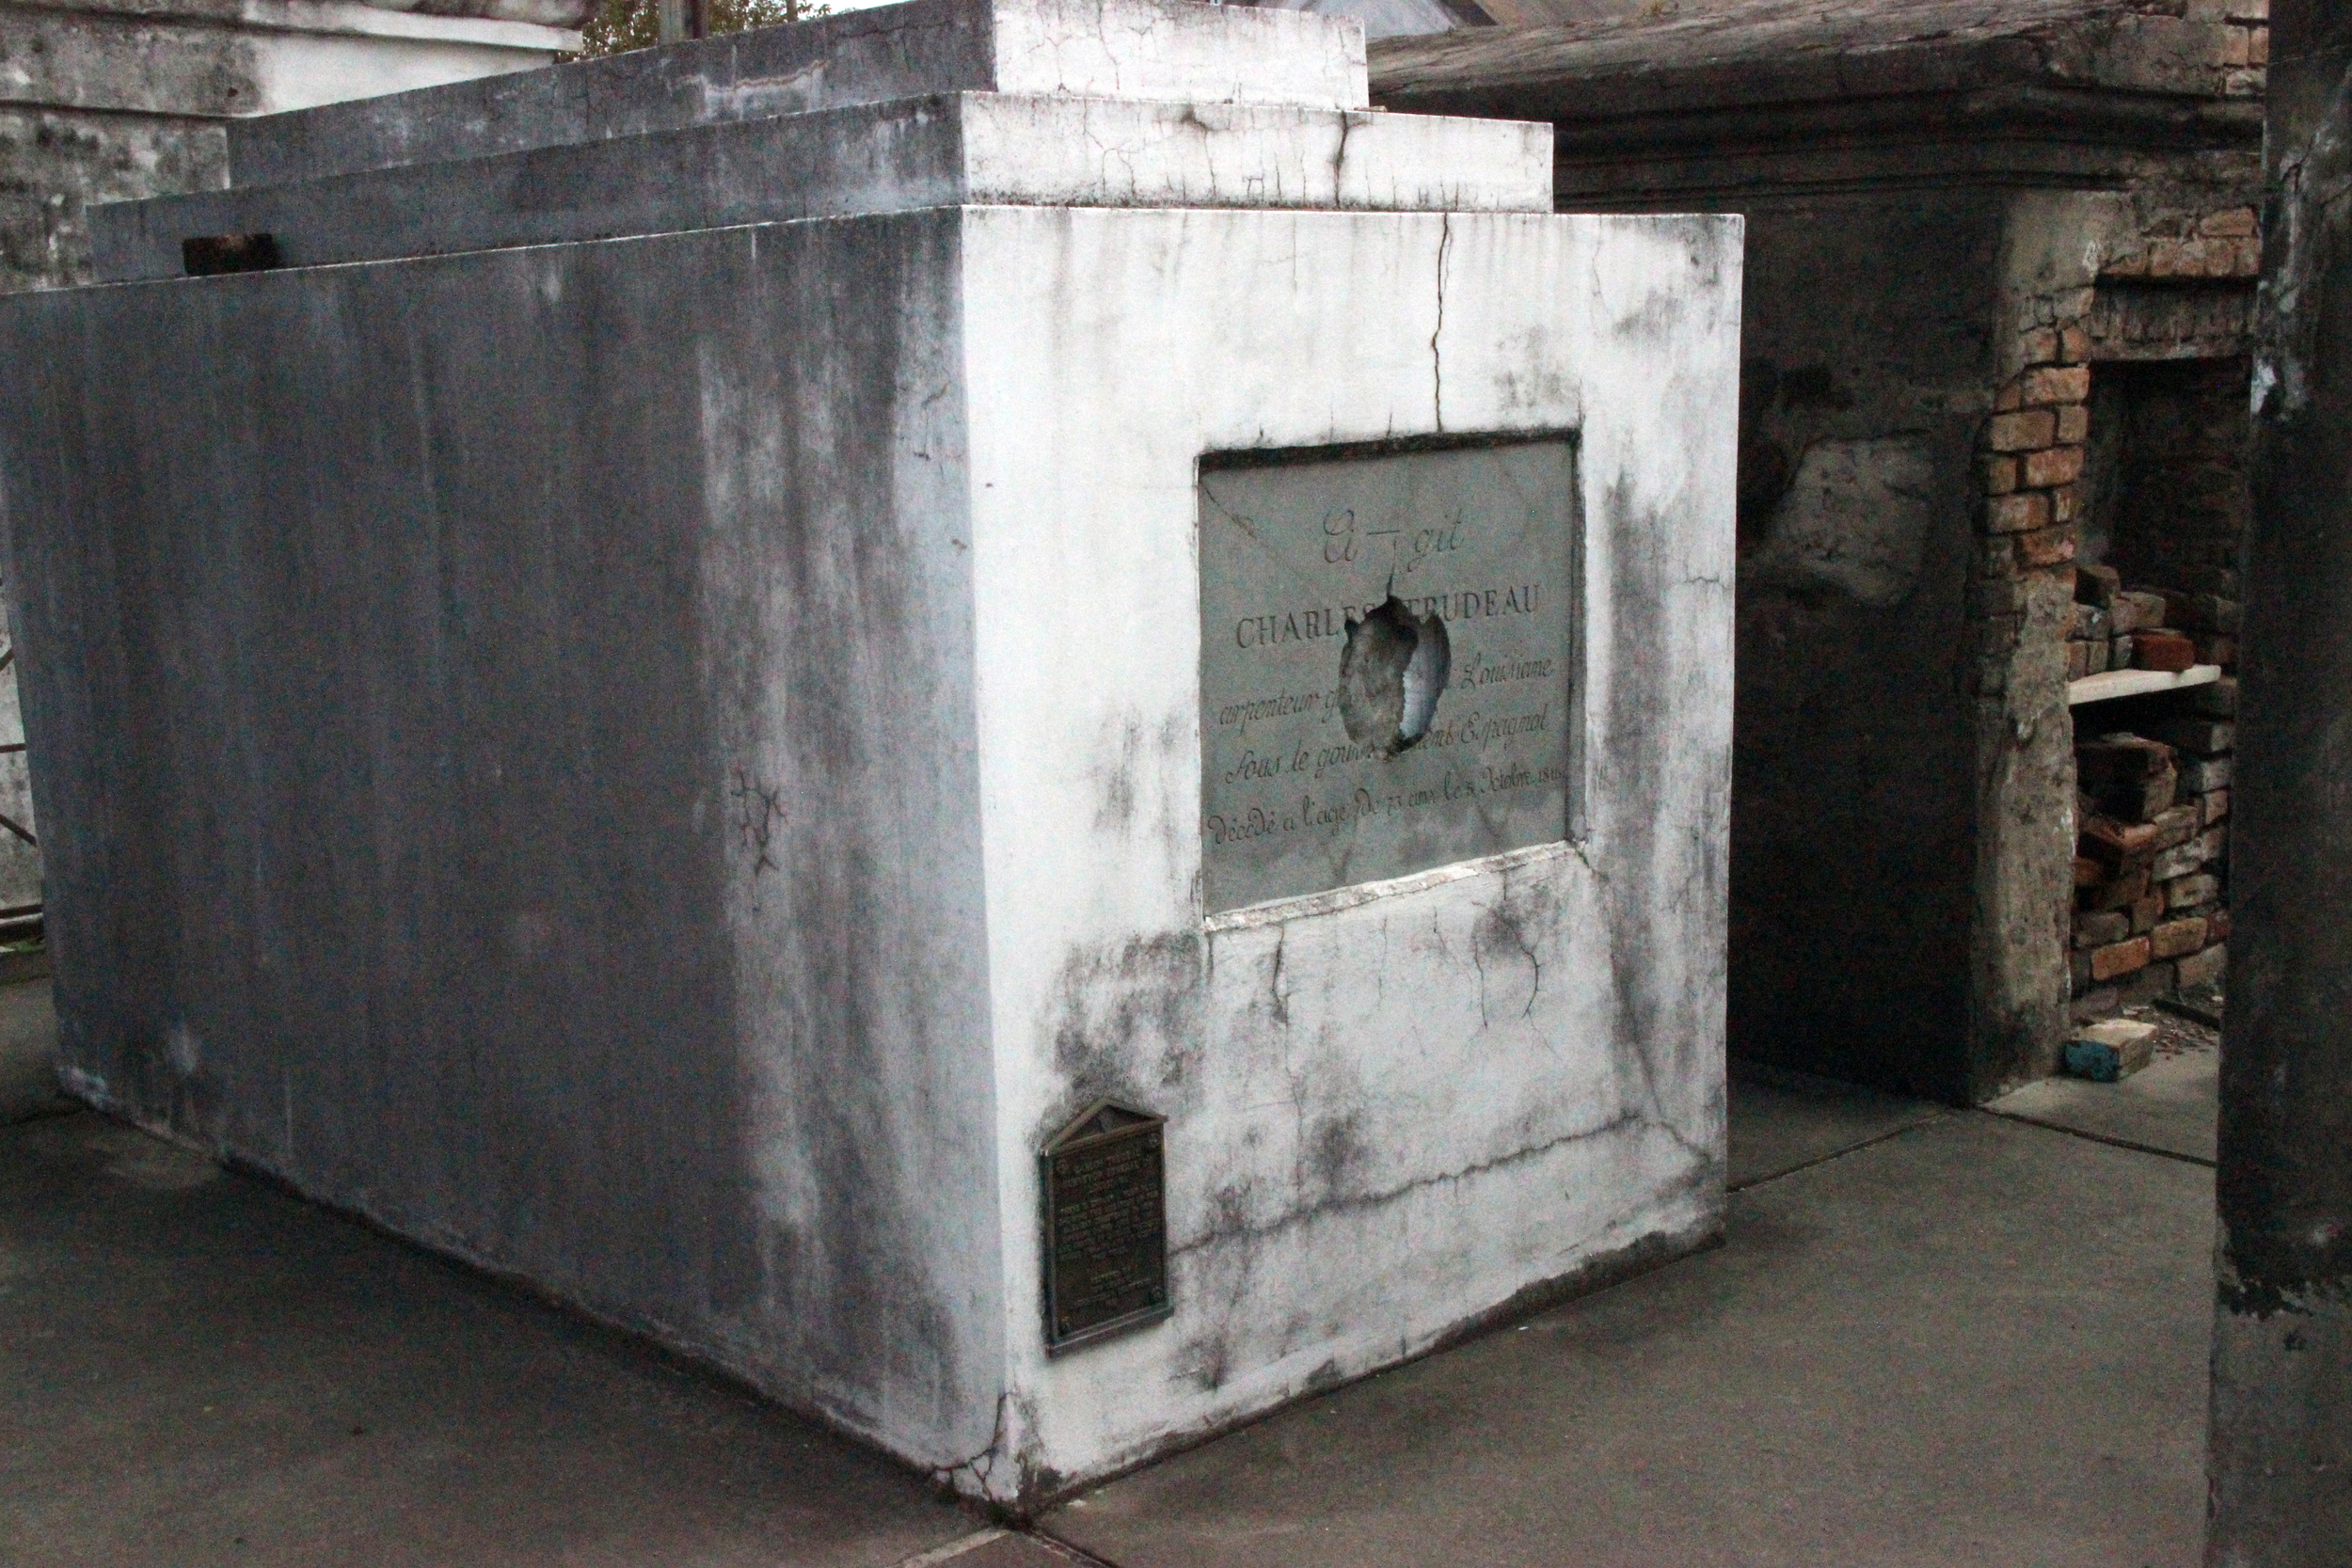 A tomb which was vandalized by someone intending to steal parts of the skeleton inside